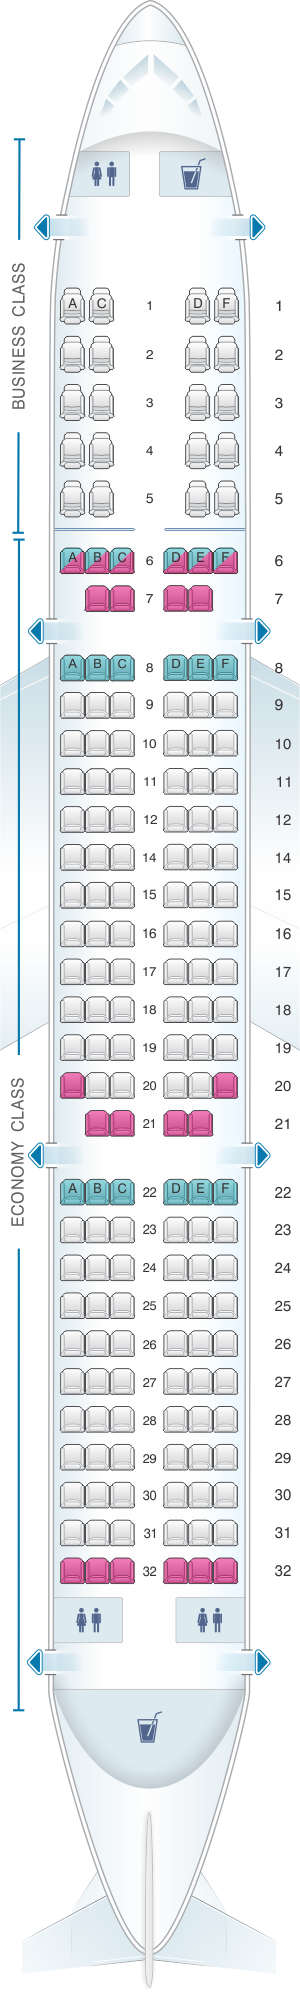 Seat map for Air India Airbus A321